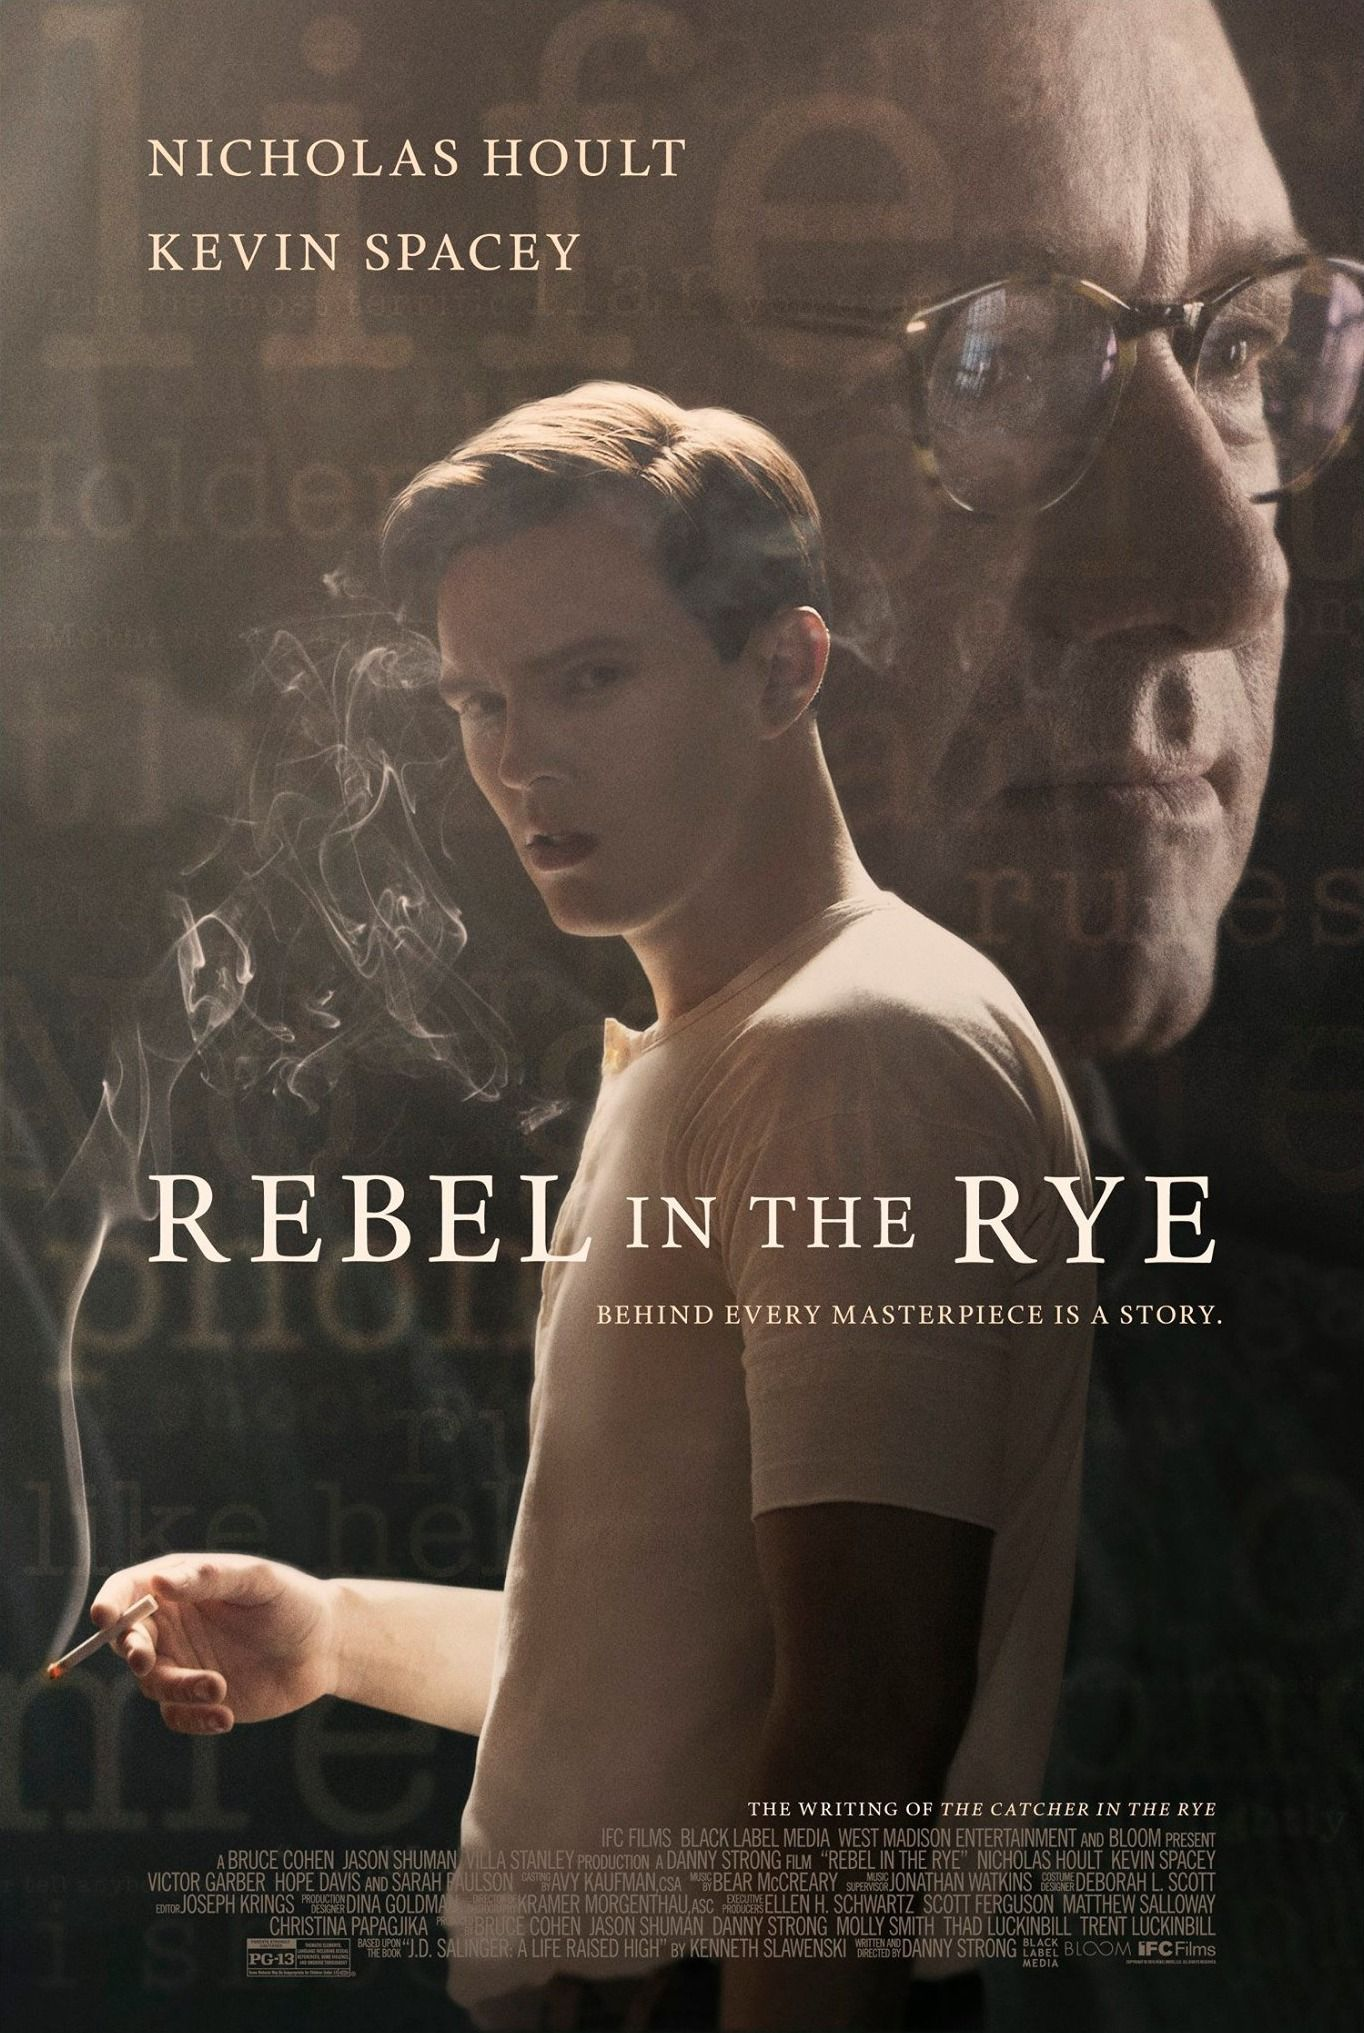 First official poster for 'Rebel in the Rye' starring Kevin Spacey & Nicholas Hoult